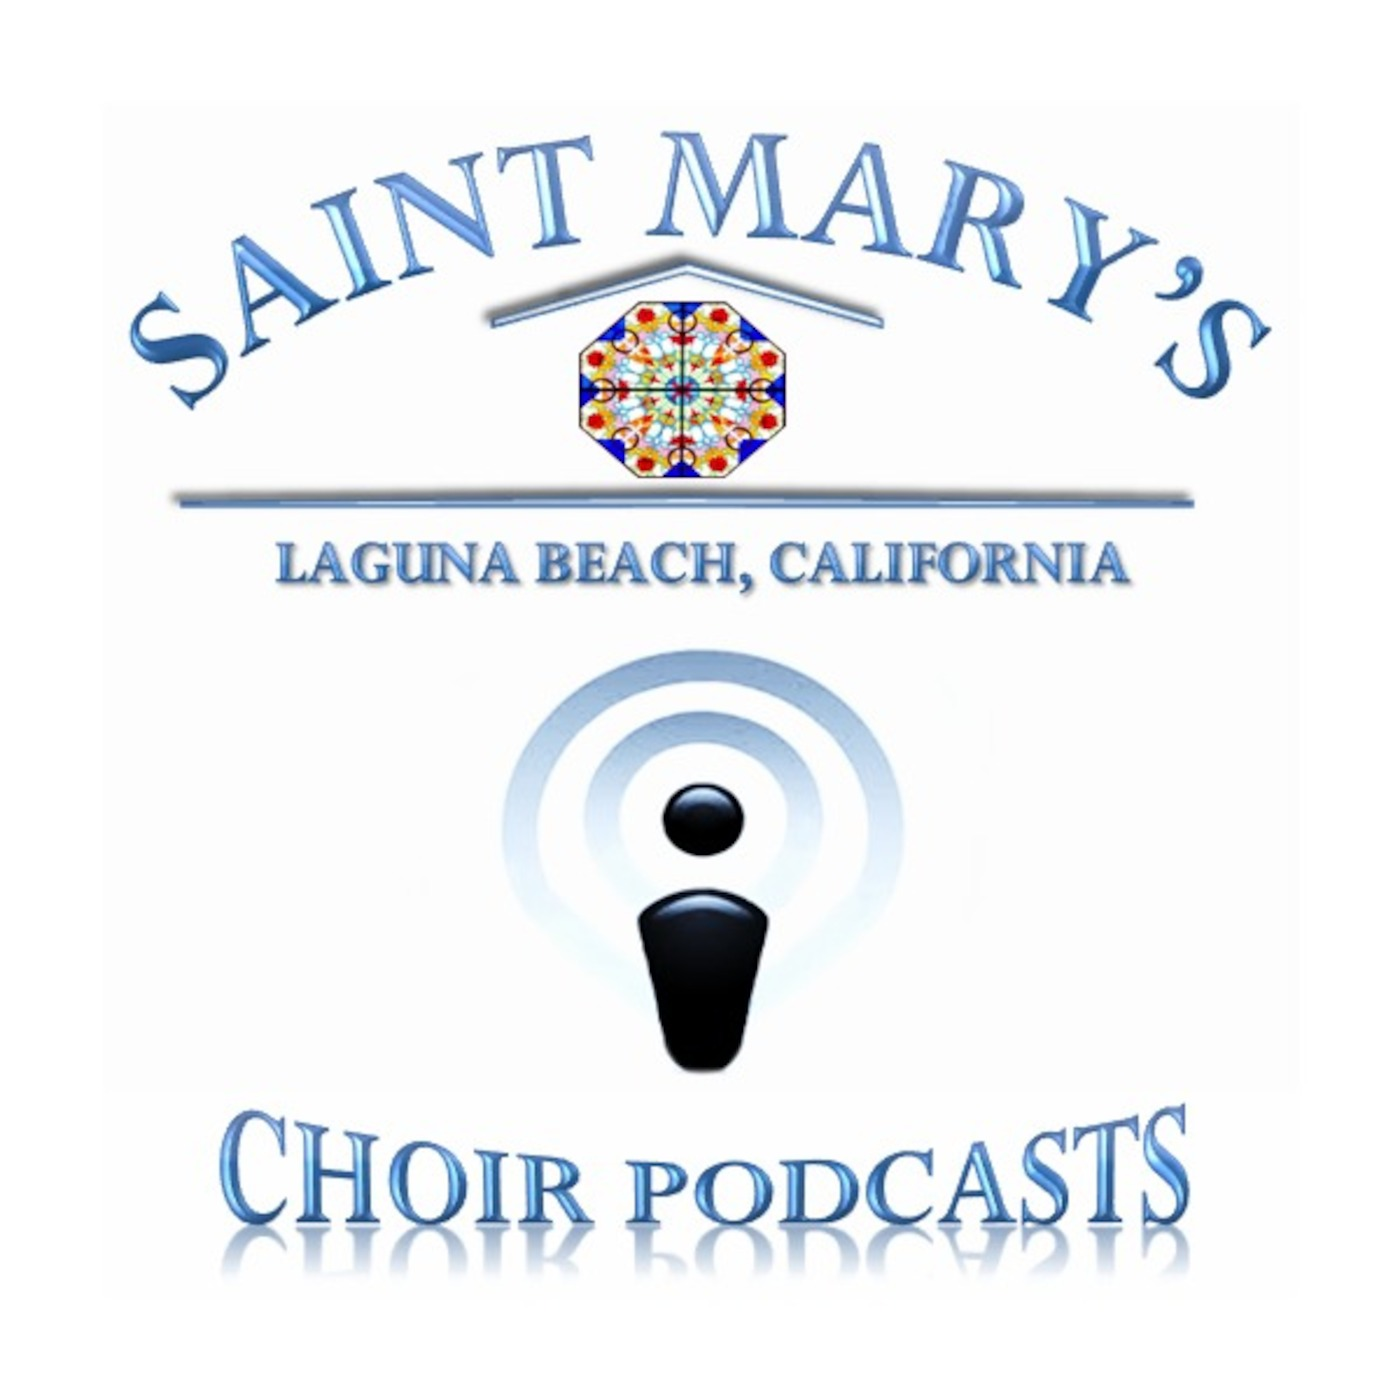 St. Mary's' Laguna Beach Choir